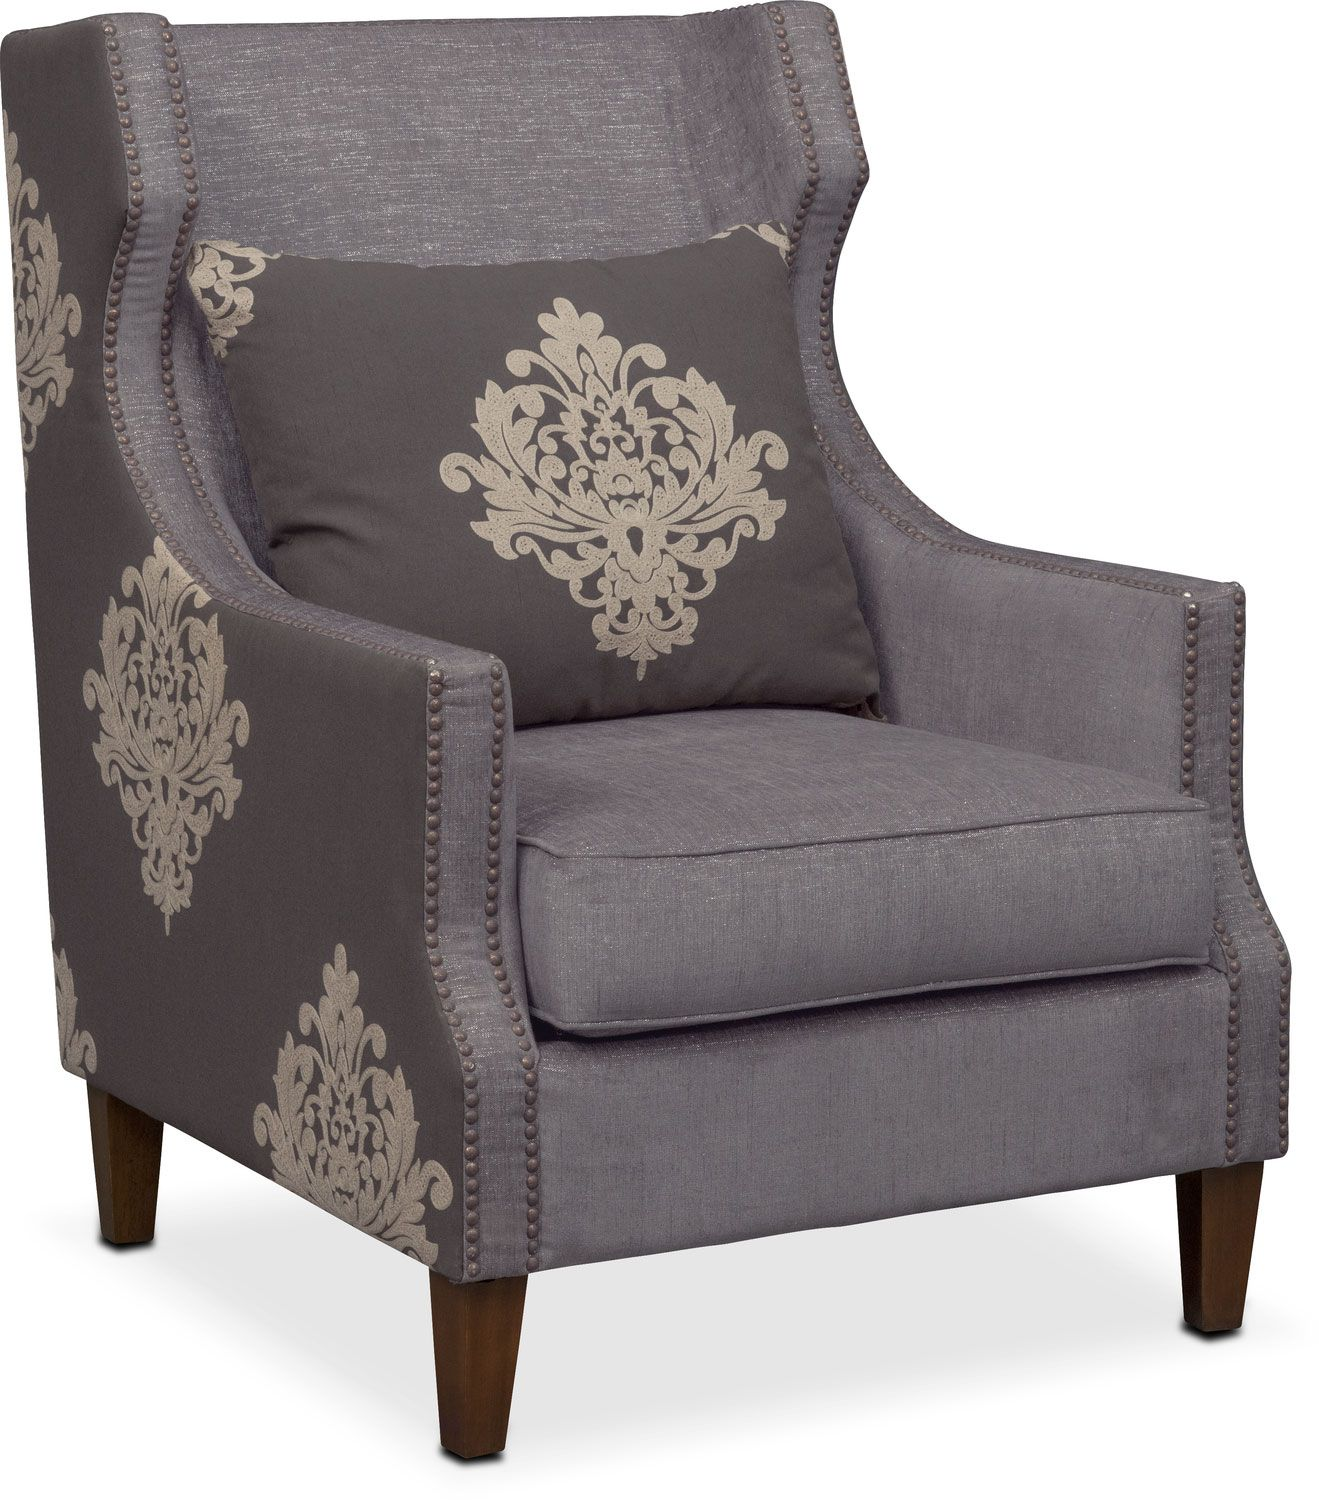 Delightful Damask Sophisticated And Refined The Dynasty Accent